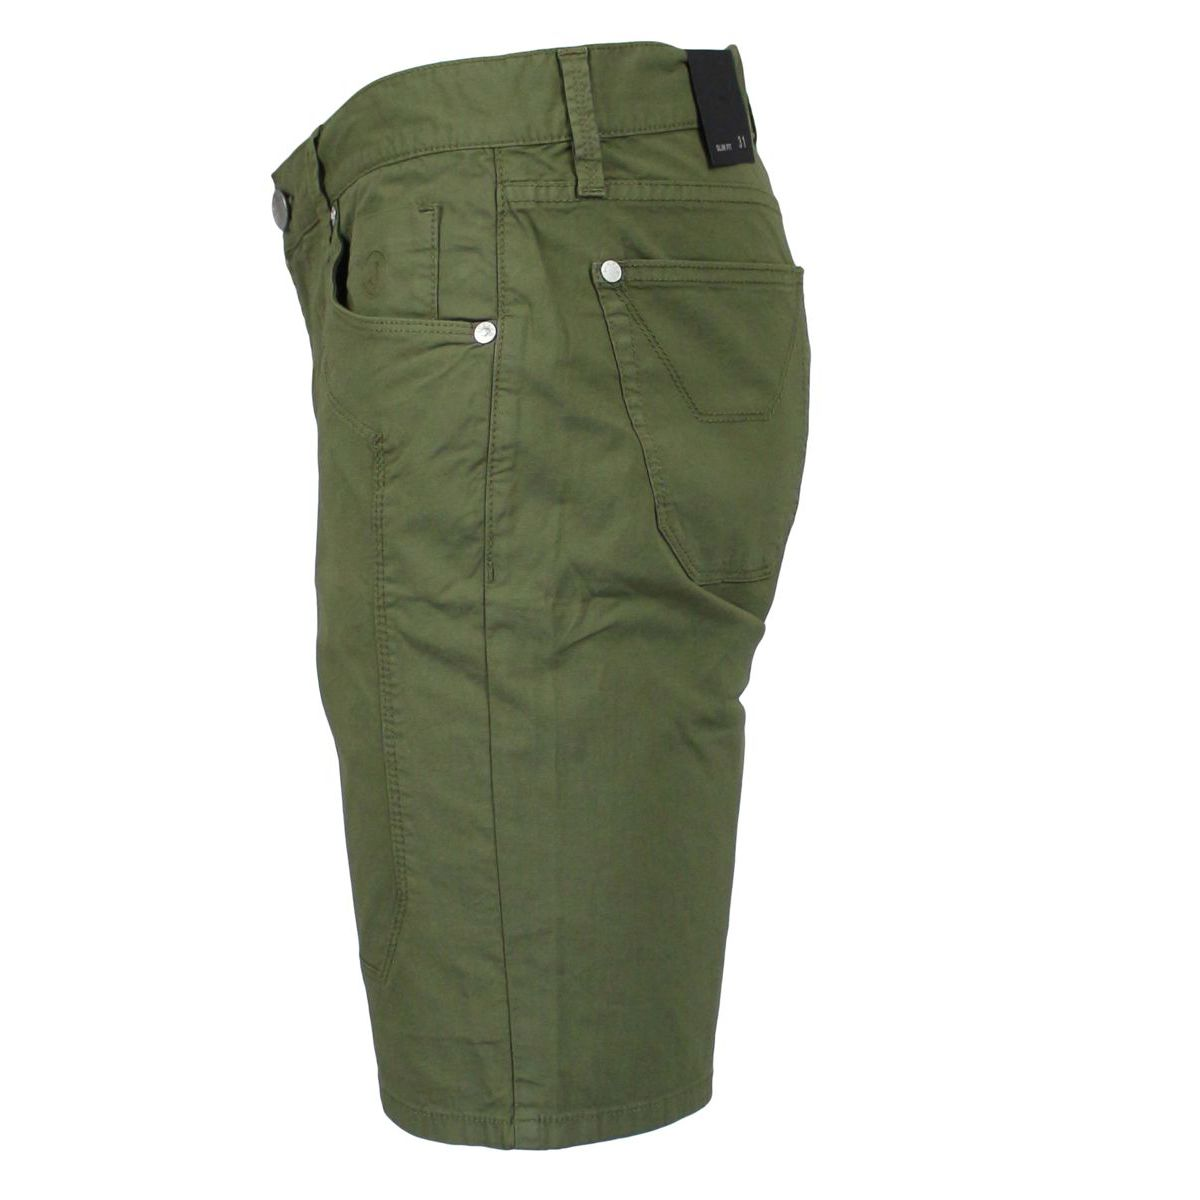 Stretch Bermuda with patches Military Jeckerson